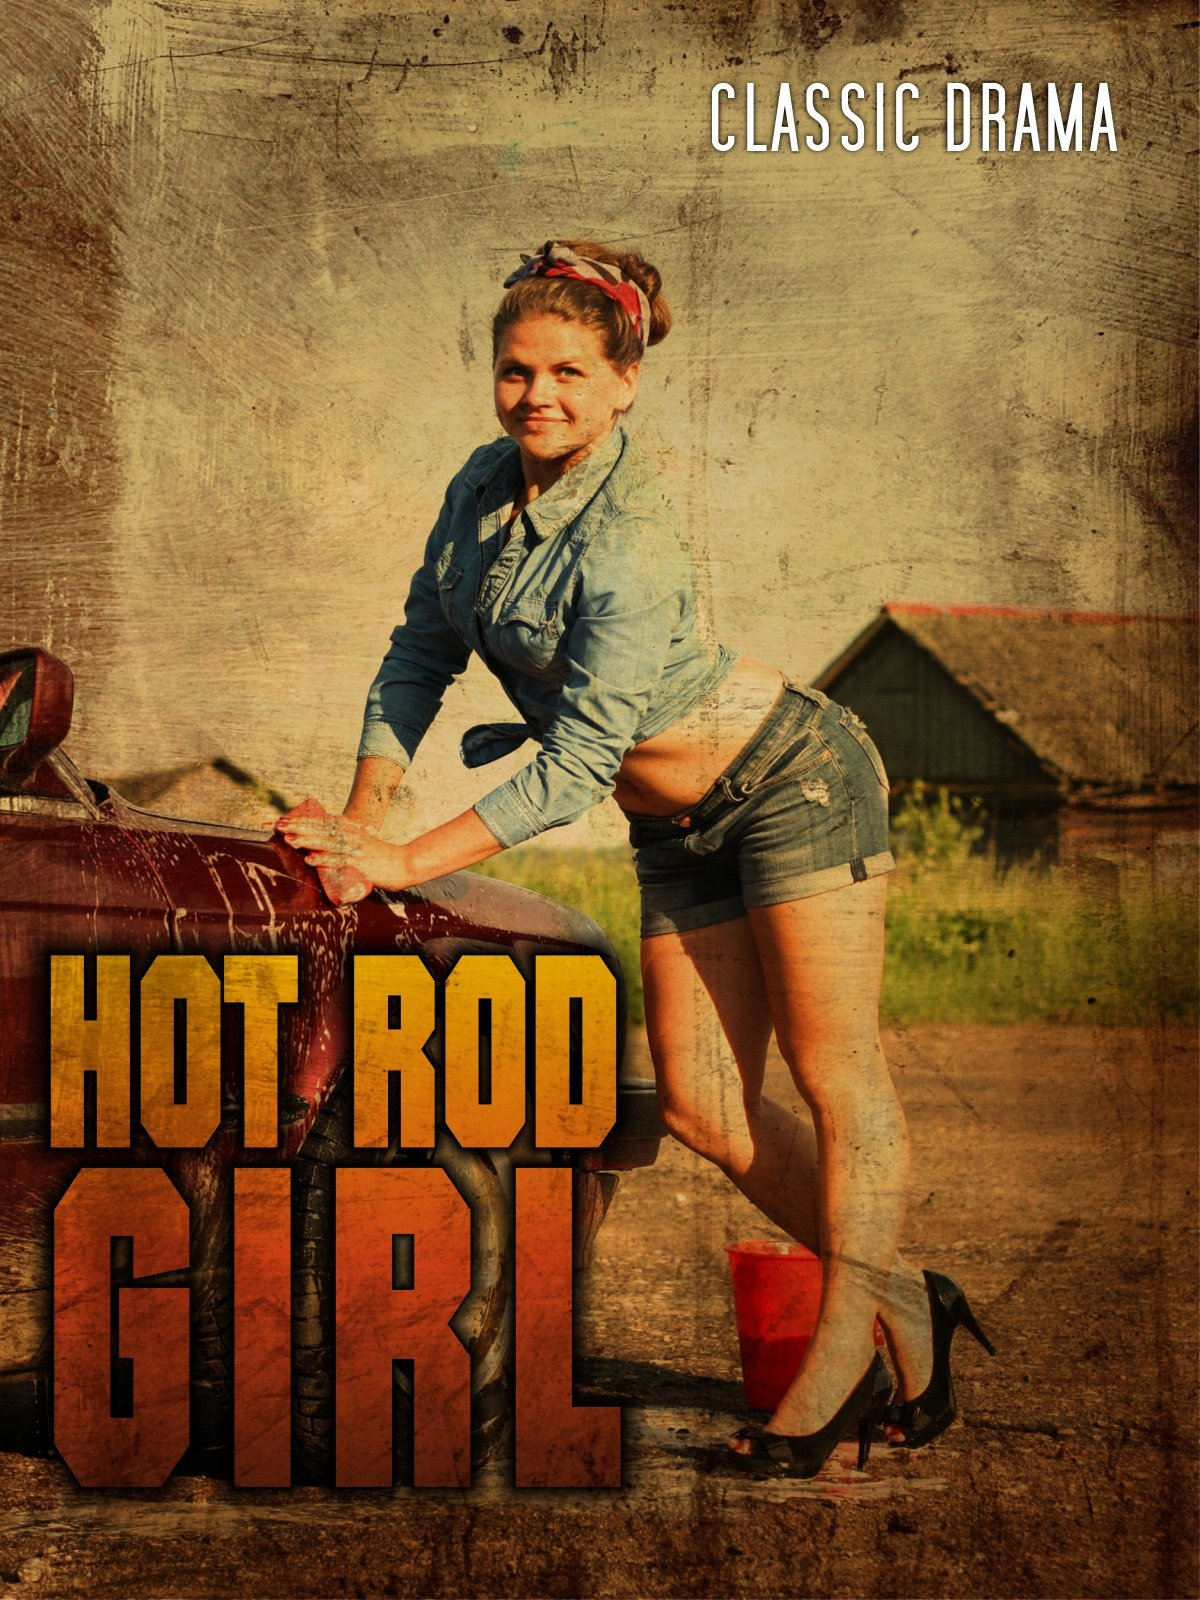 Hot Rod Girl: Classic Drama